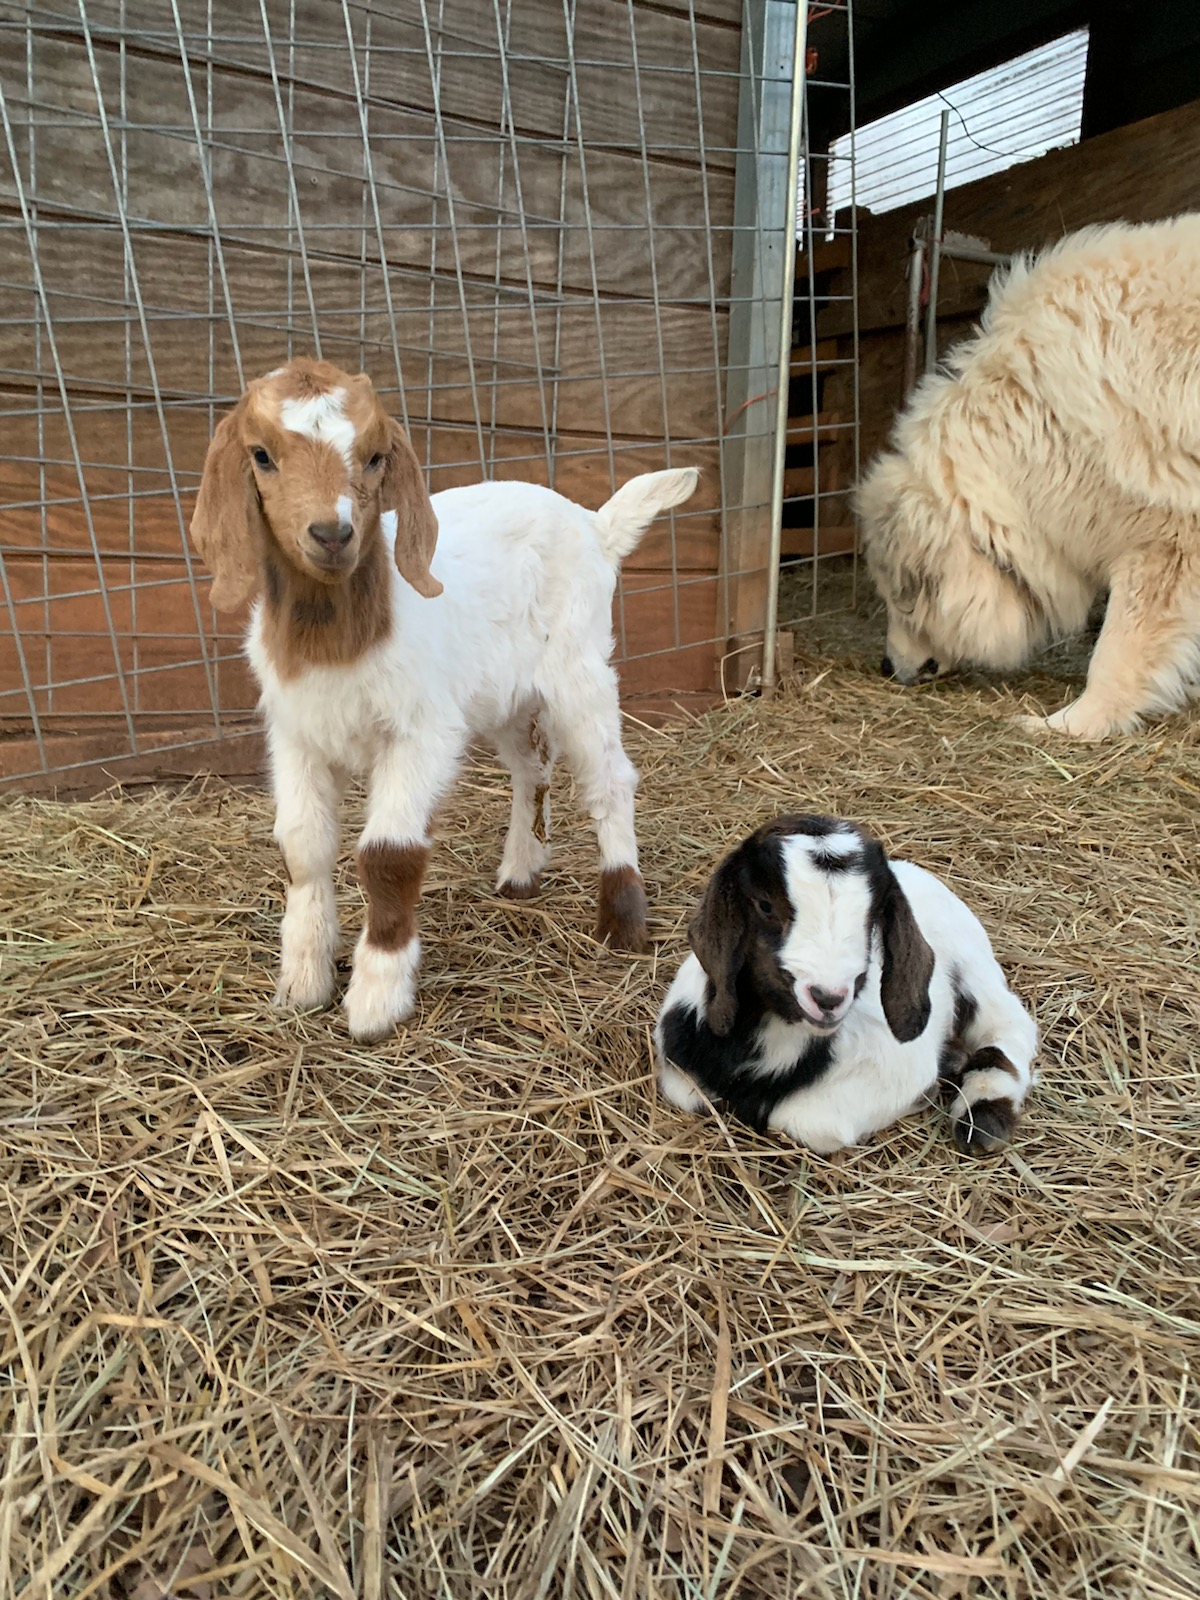 Copper's Babies - Submitted by Julie Macialek, Office of Research, Innovation and Economic Development